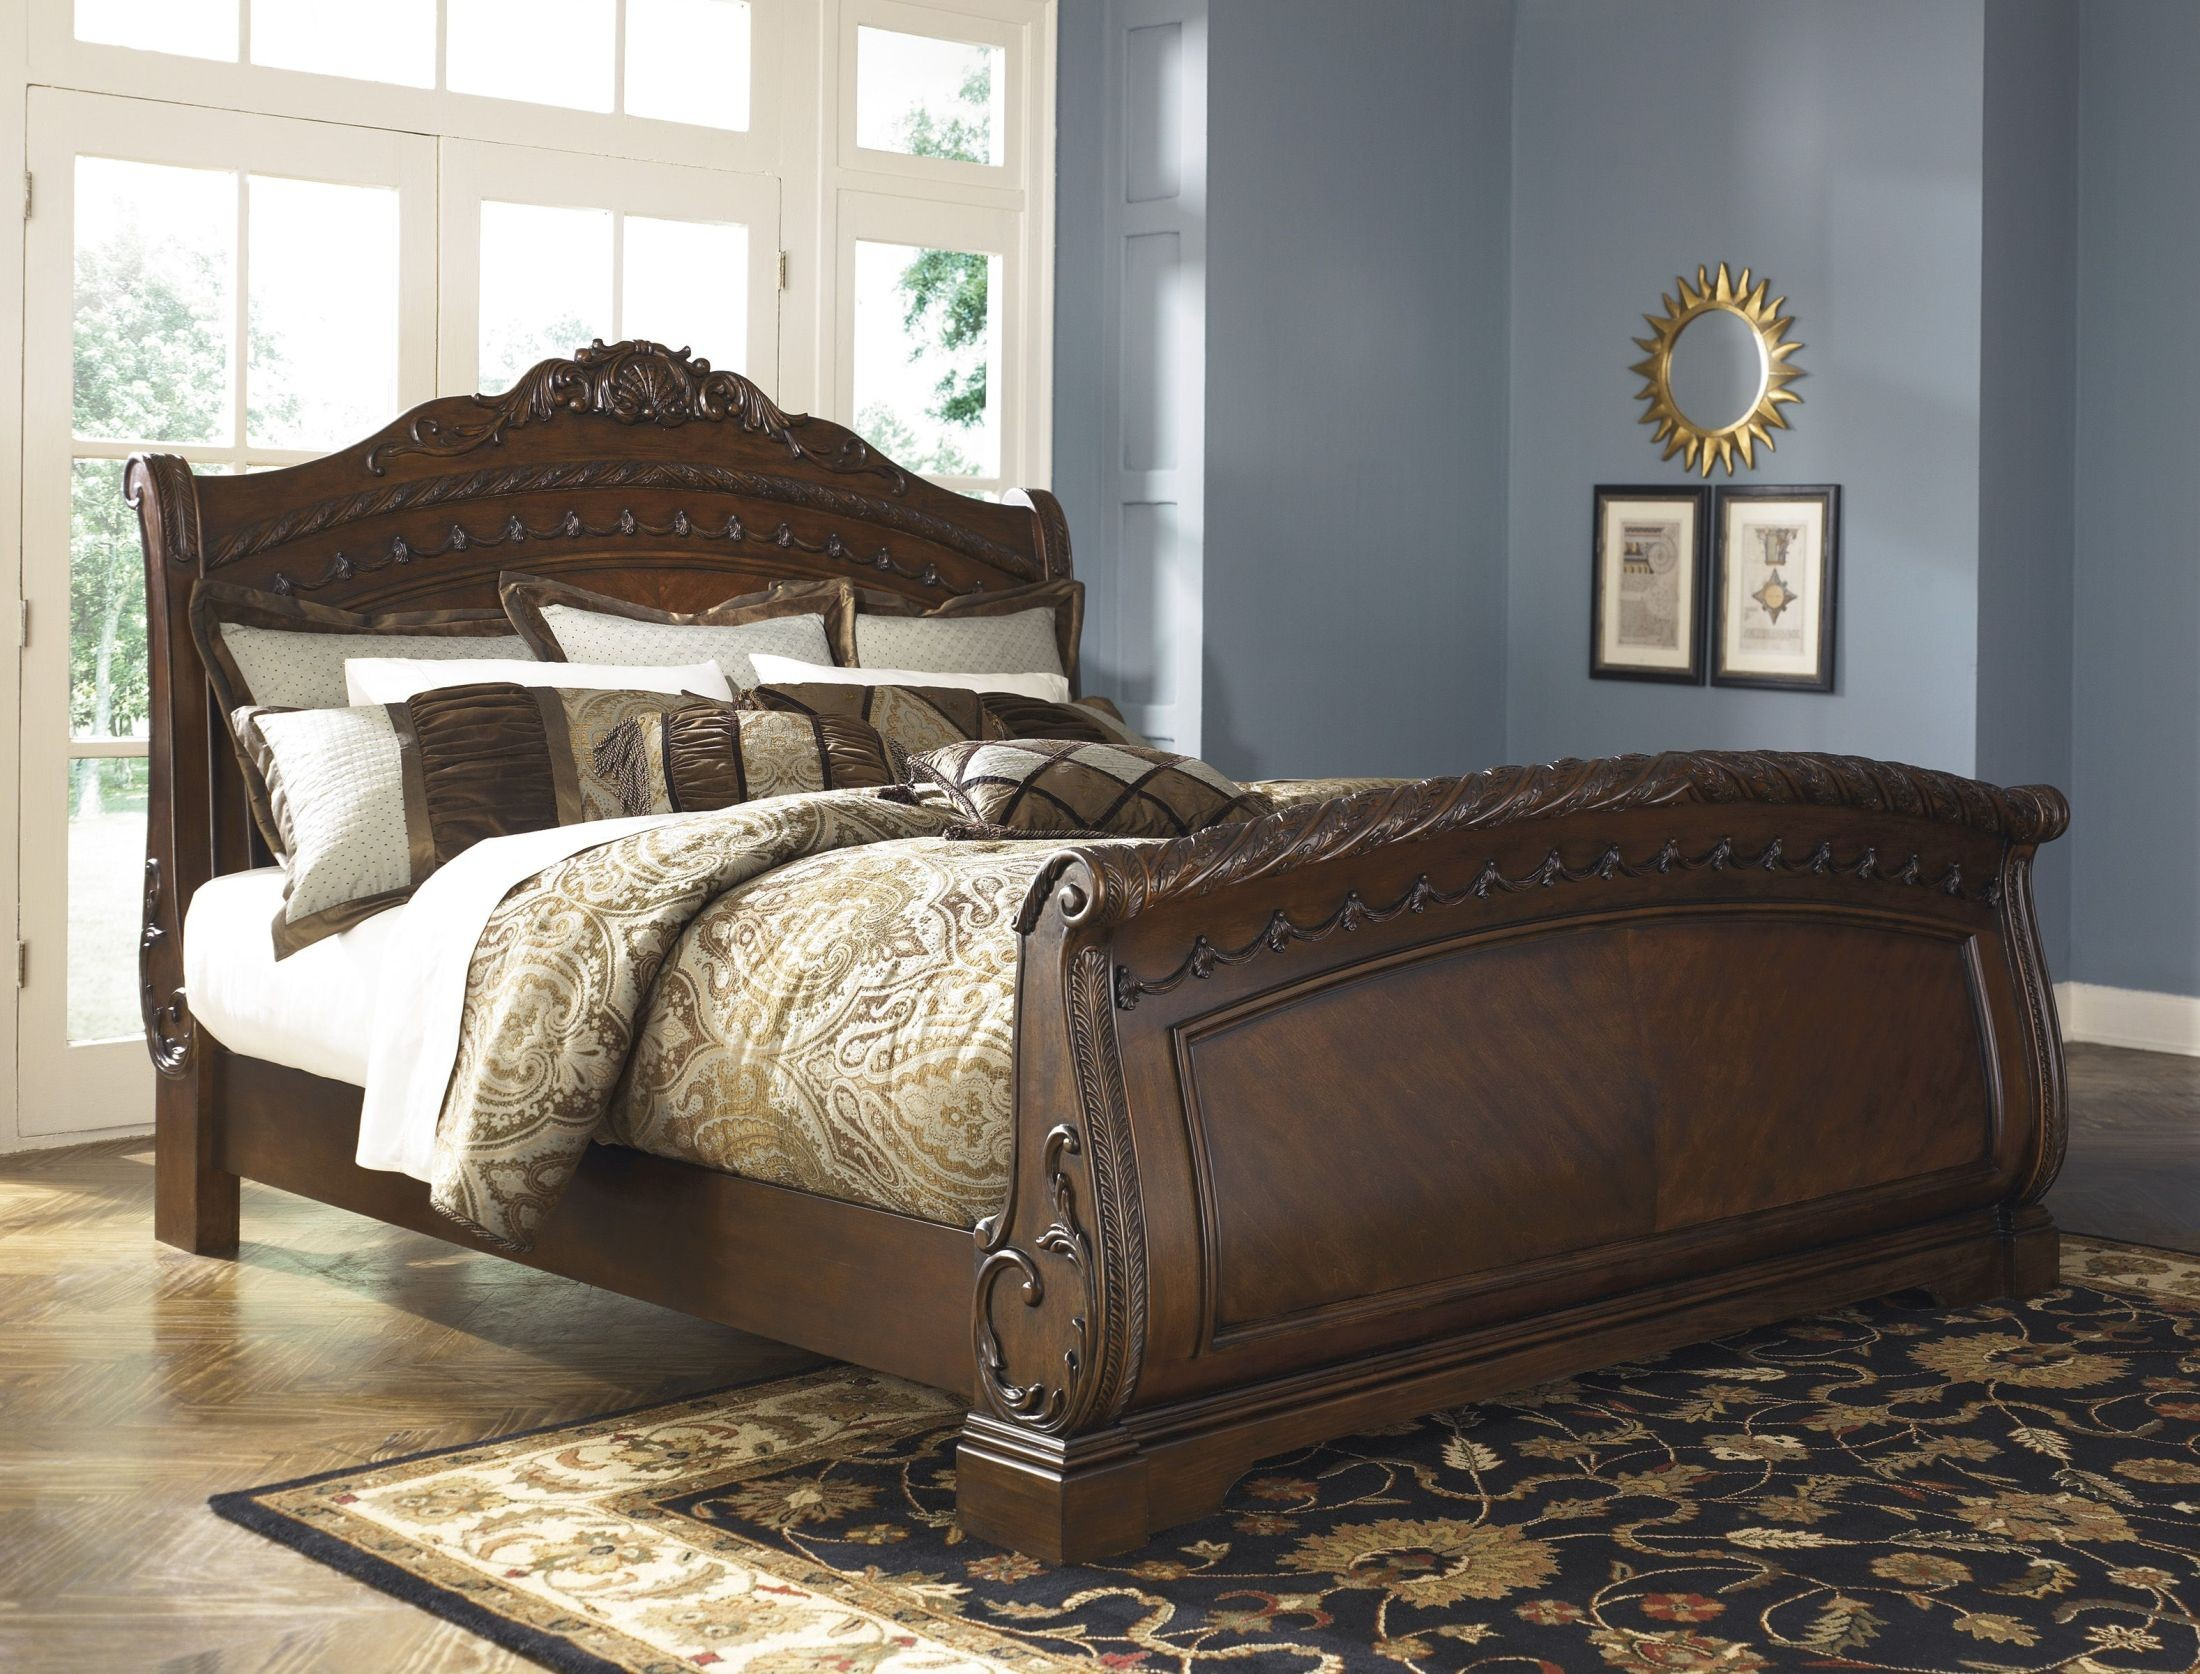 North Shore King Sleigh Bed from Ashley B553787679 Coleman